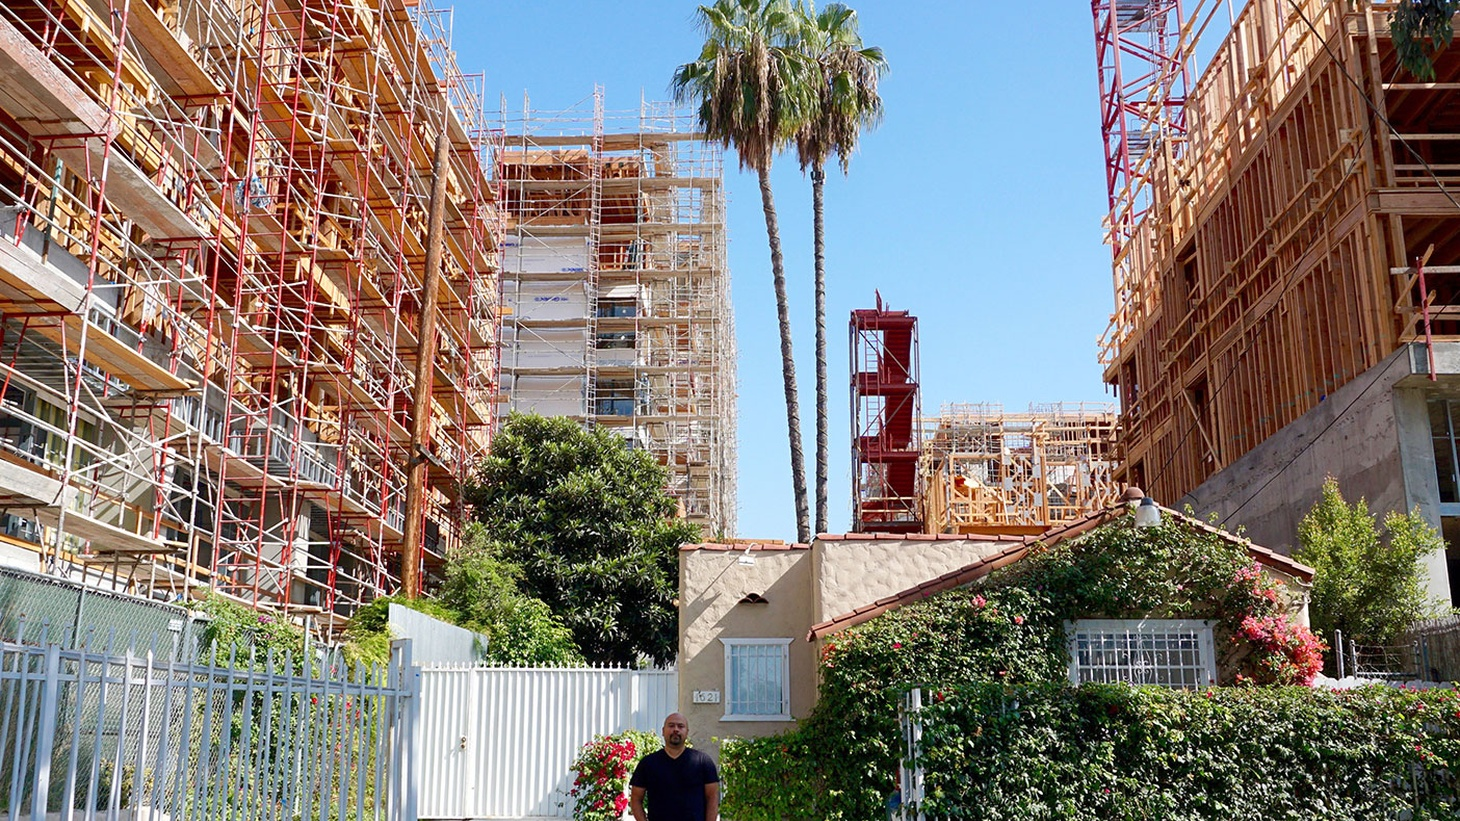 Los Angeles is growing up, becoming denser and more urban. But there's still not enough housing. Who is L.A. for?      This eight-part series is supported by the Conrad N. Hilton Foundation.